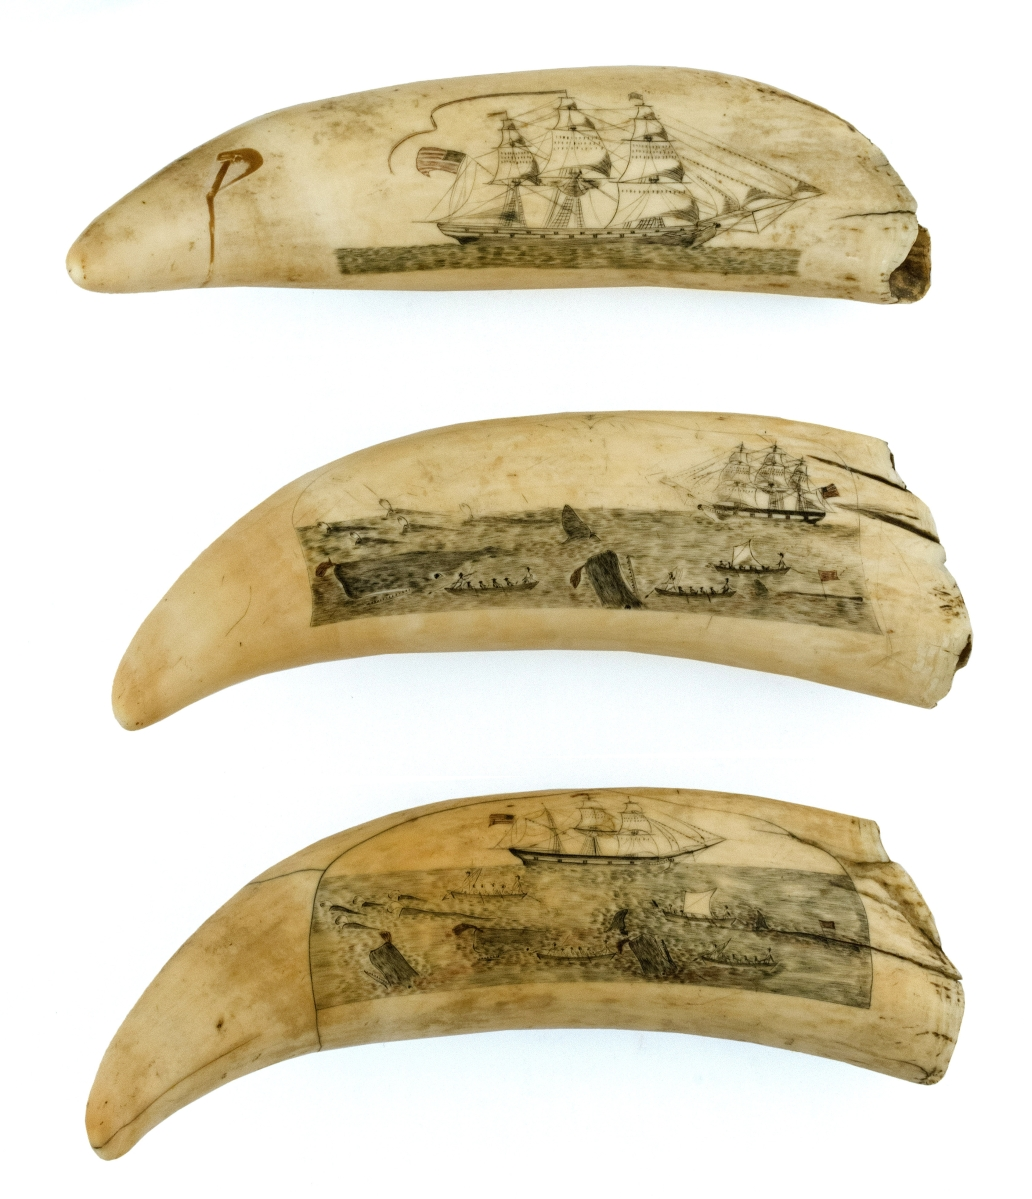 "Attributed to the ""Arch Engraver,"" these three teeth achieved the second highest price of the sale, $240,000. The teeth are from the same jawbone and the scenes on them correlate with one another. They depict closeup views of whales being captured, detailed images of whaleboats and their crews, an American flagged whaleship, etc. From the Mittler collection, the teeth, were discovered individually and assembled as a set for the first time in this collection."